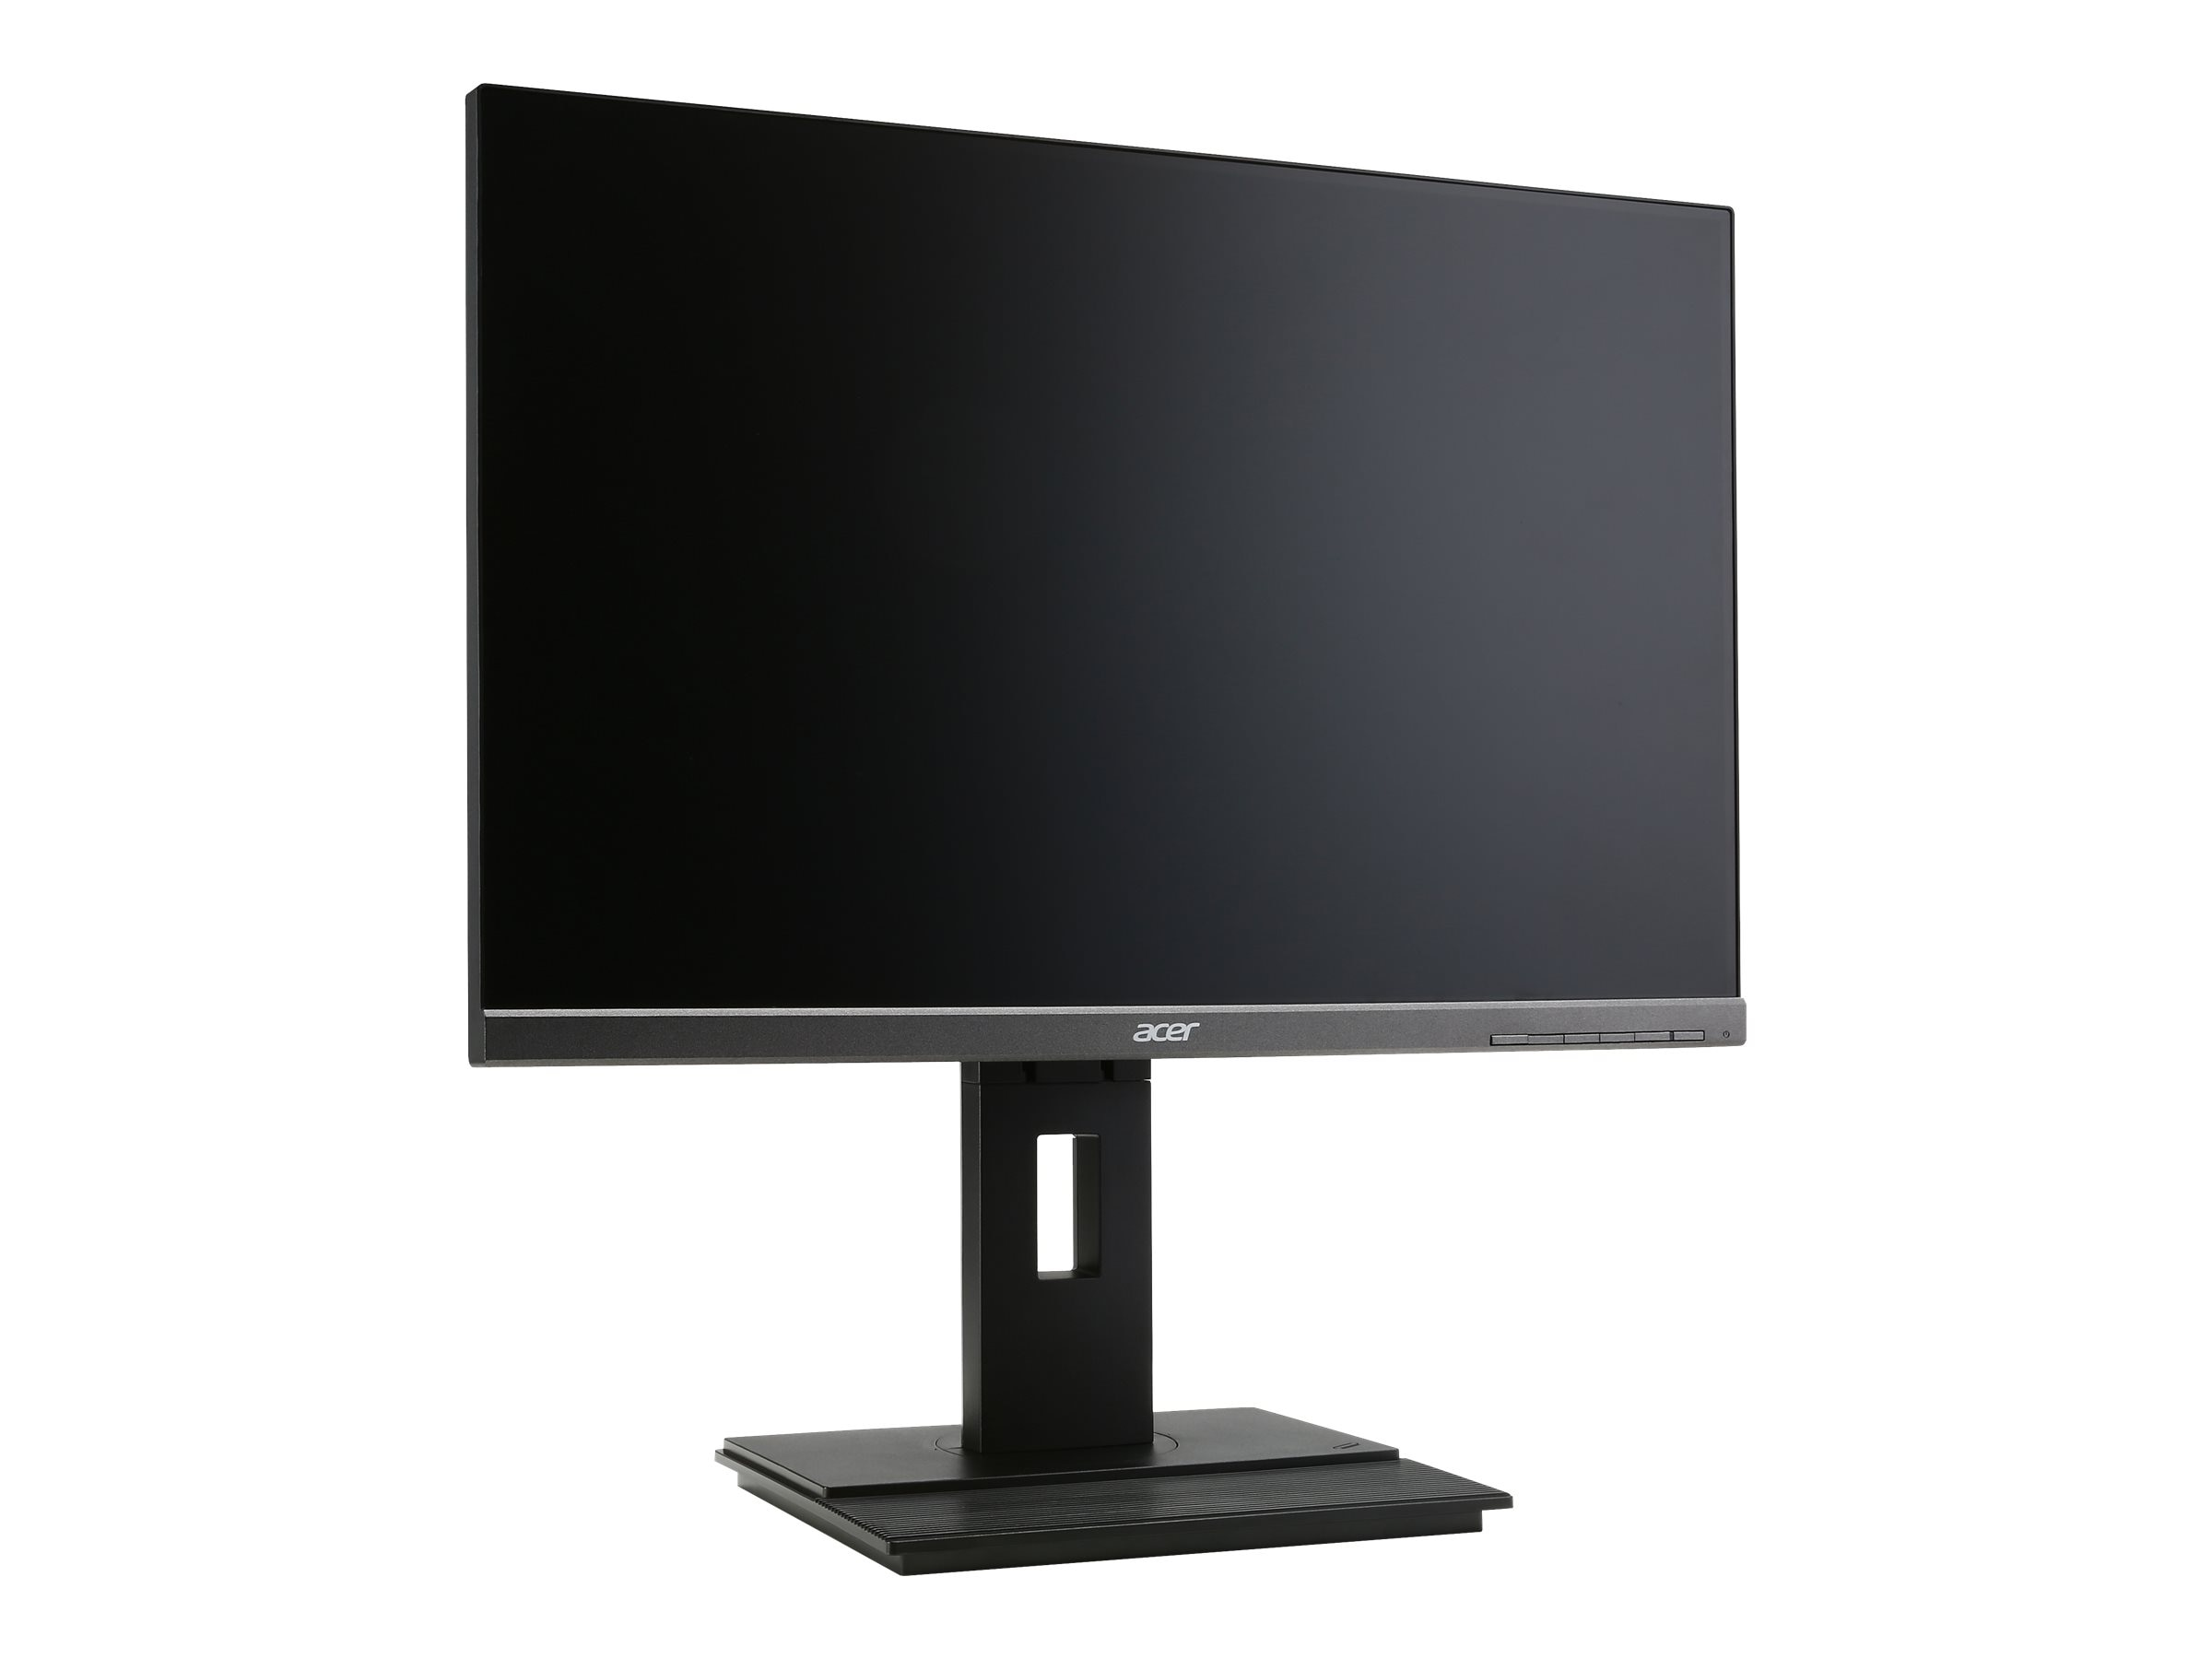 Acer 24 B246WL ymdprzx LED-LCD Monitor with Speakers, Dark Gray, UM.FB6AA.003